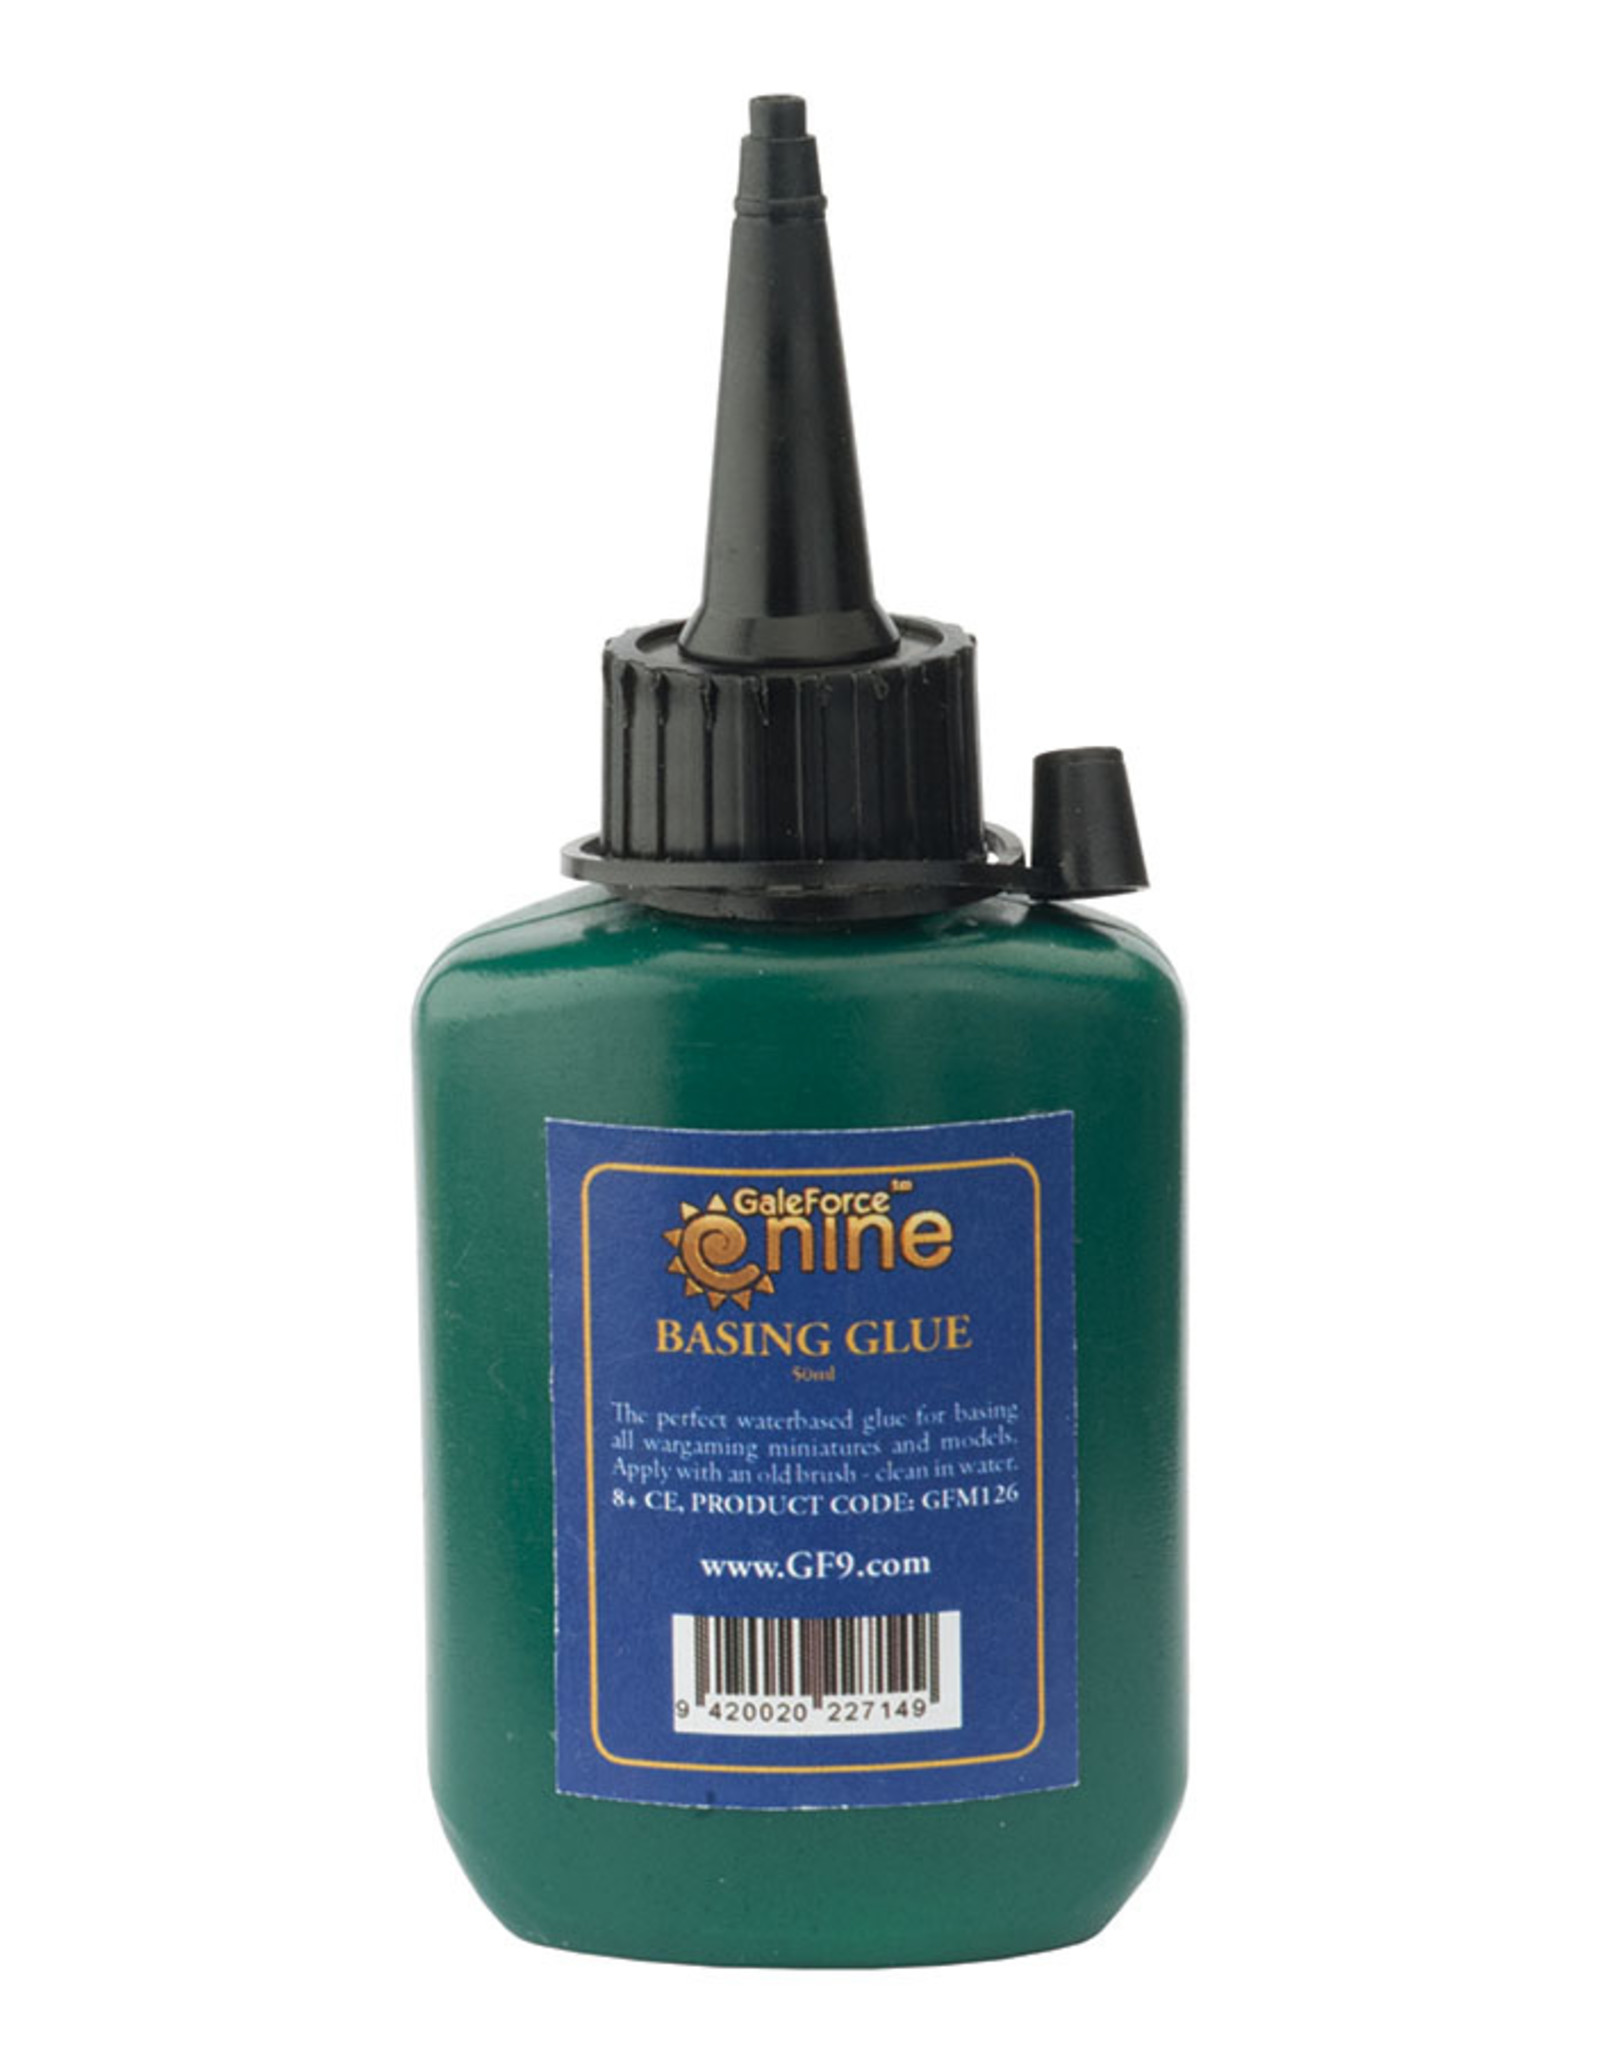 Gale Force 9 Basing Glue